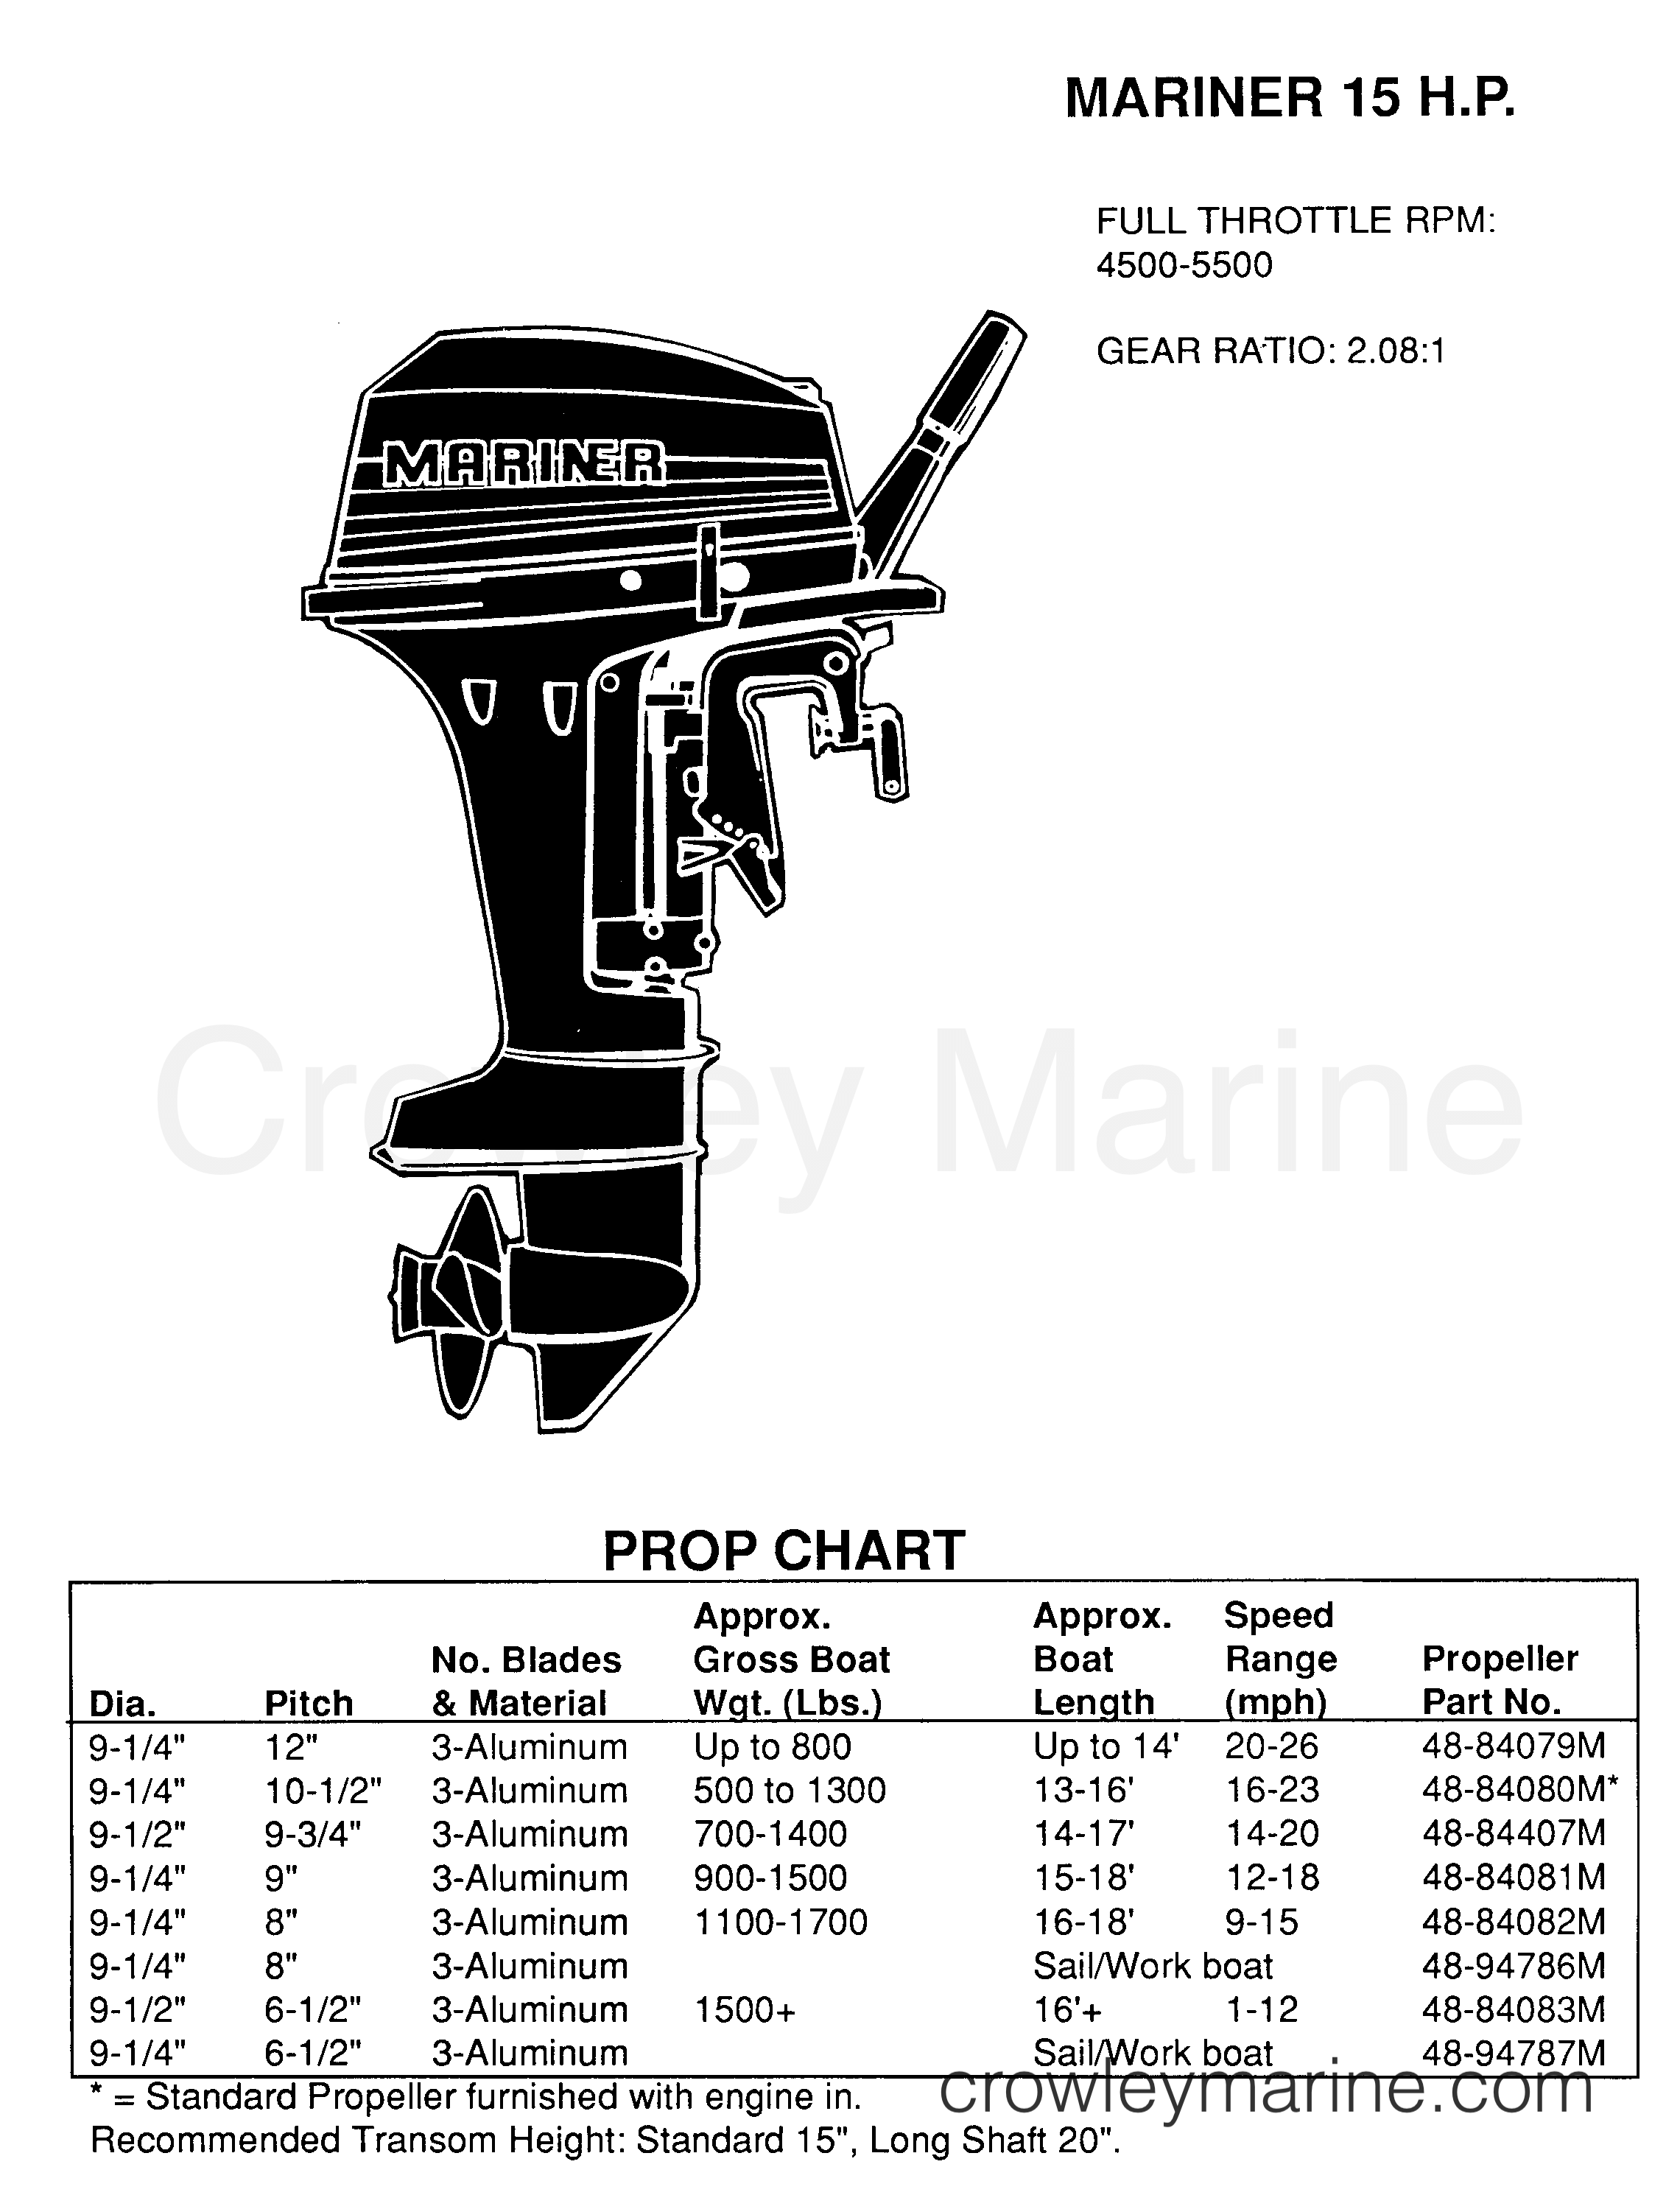 1979 Mariner Outboard 15 El 7015529 Prop Chart Section